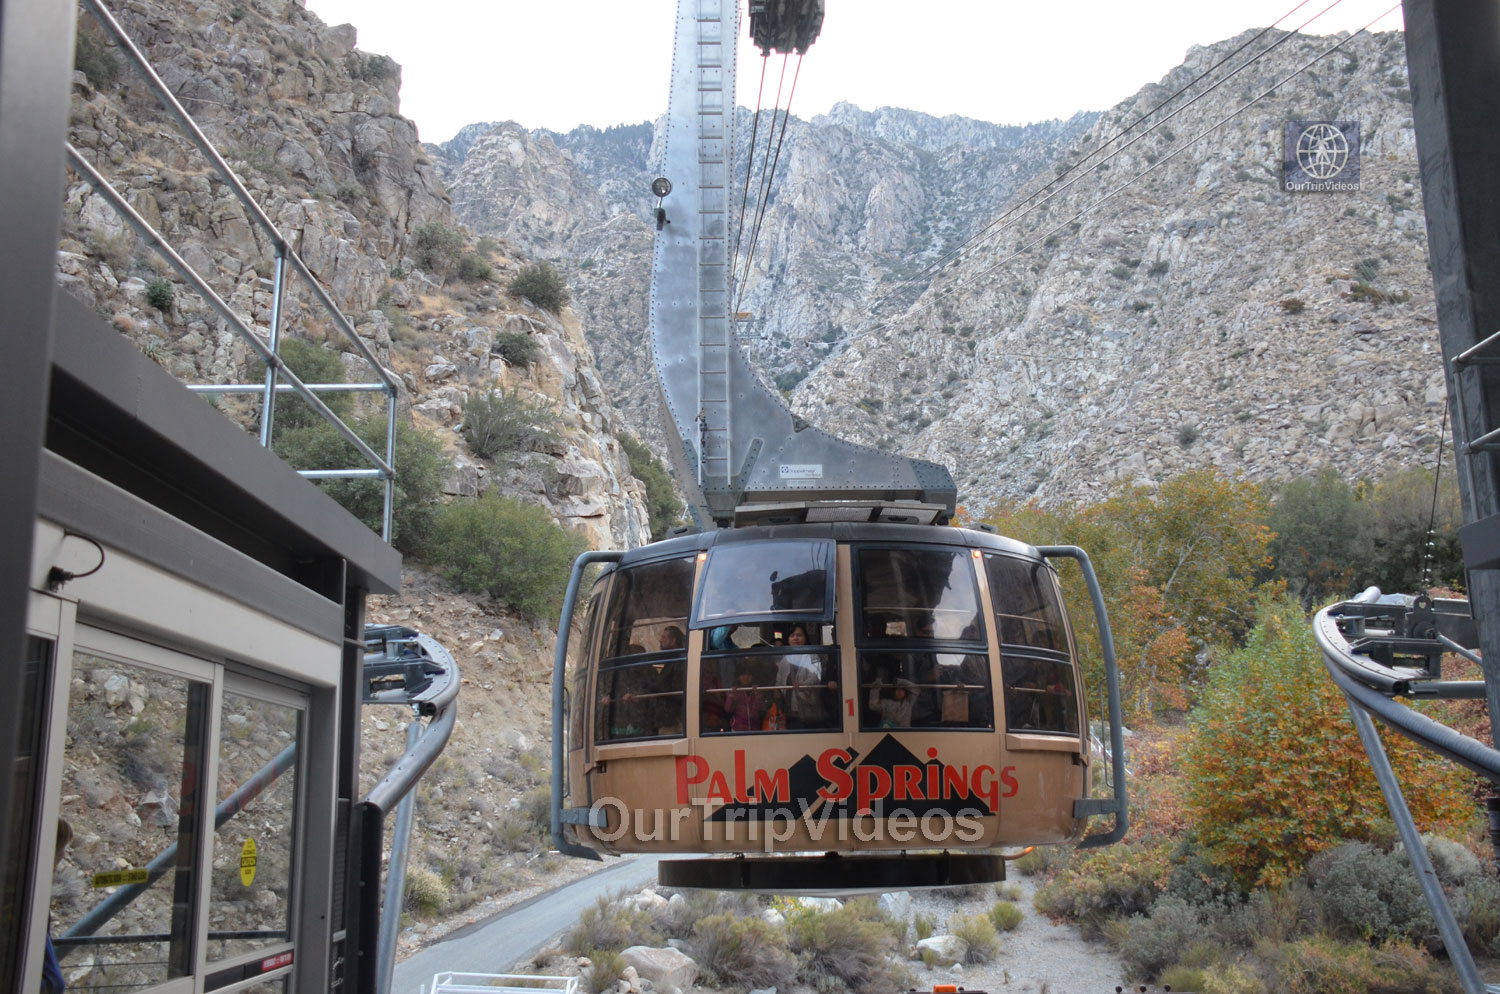 Aerial Tramway, Palm Springs, CA, USA - Picture 15 of 25